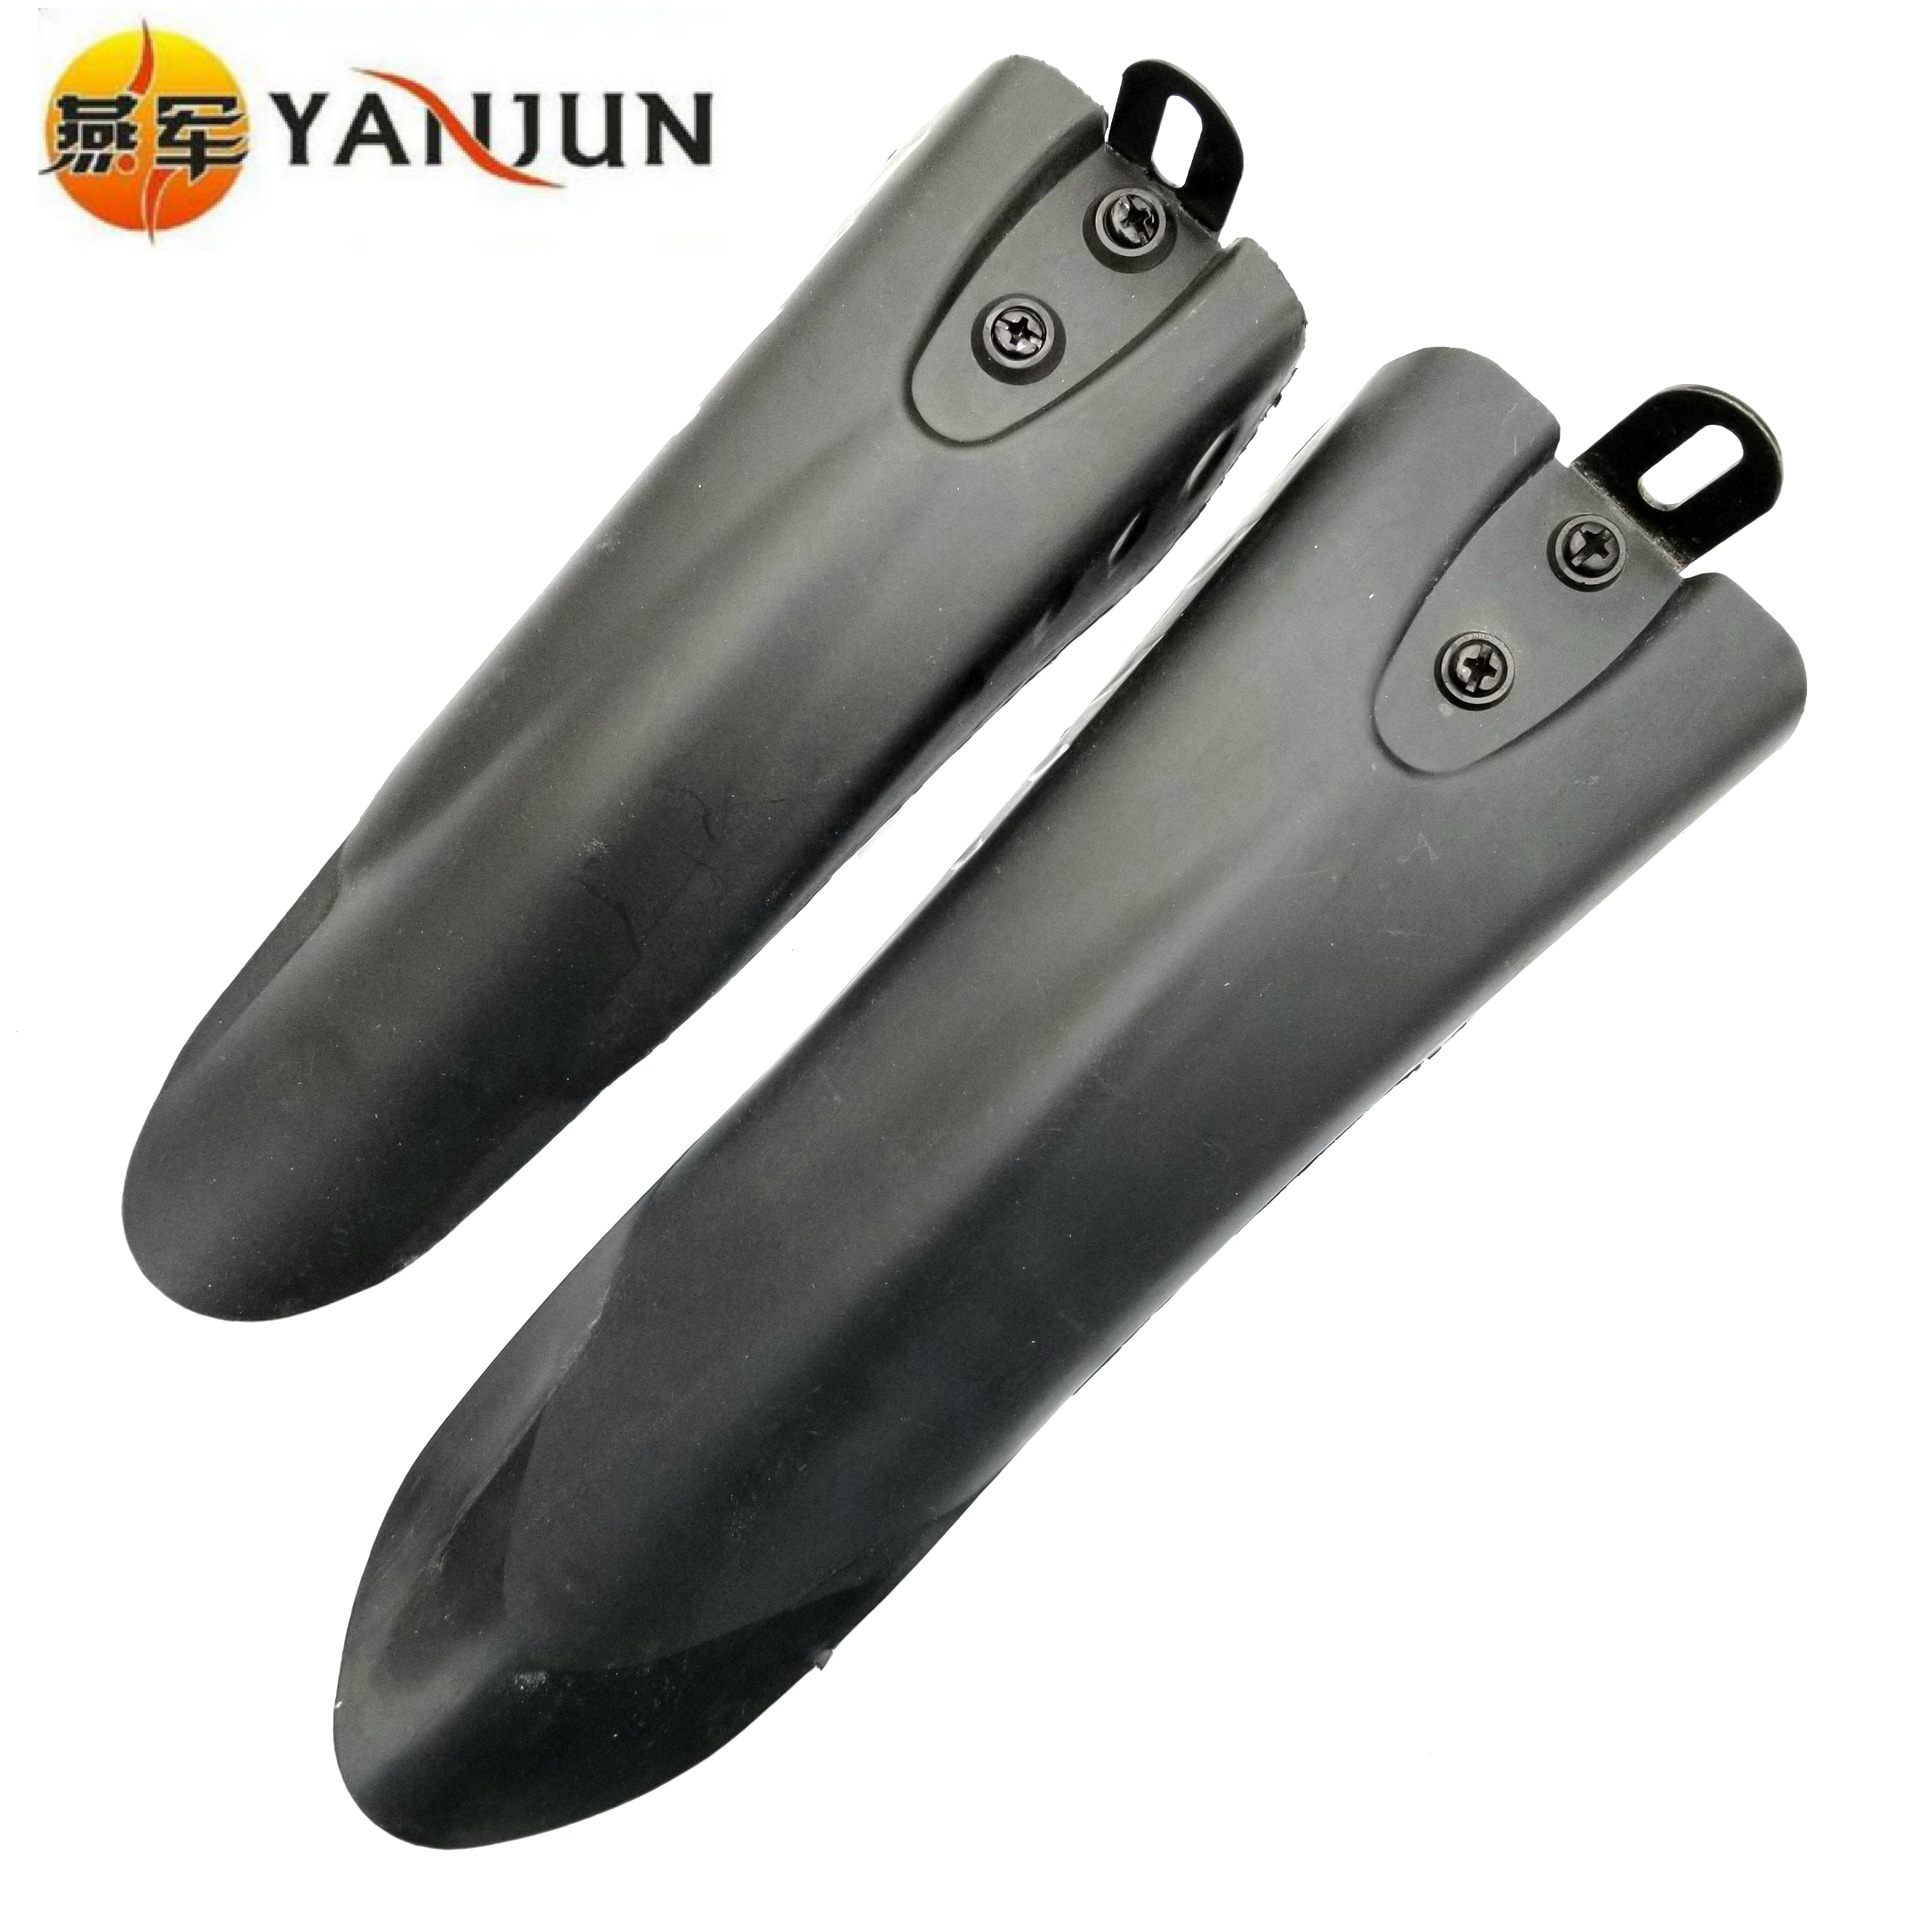 Stroller Type 12-20 Type Bicycle Fender Quick Release Accessories Cement Tile Fender Bicycle Rainy Day Riding Equipment